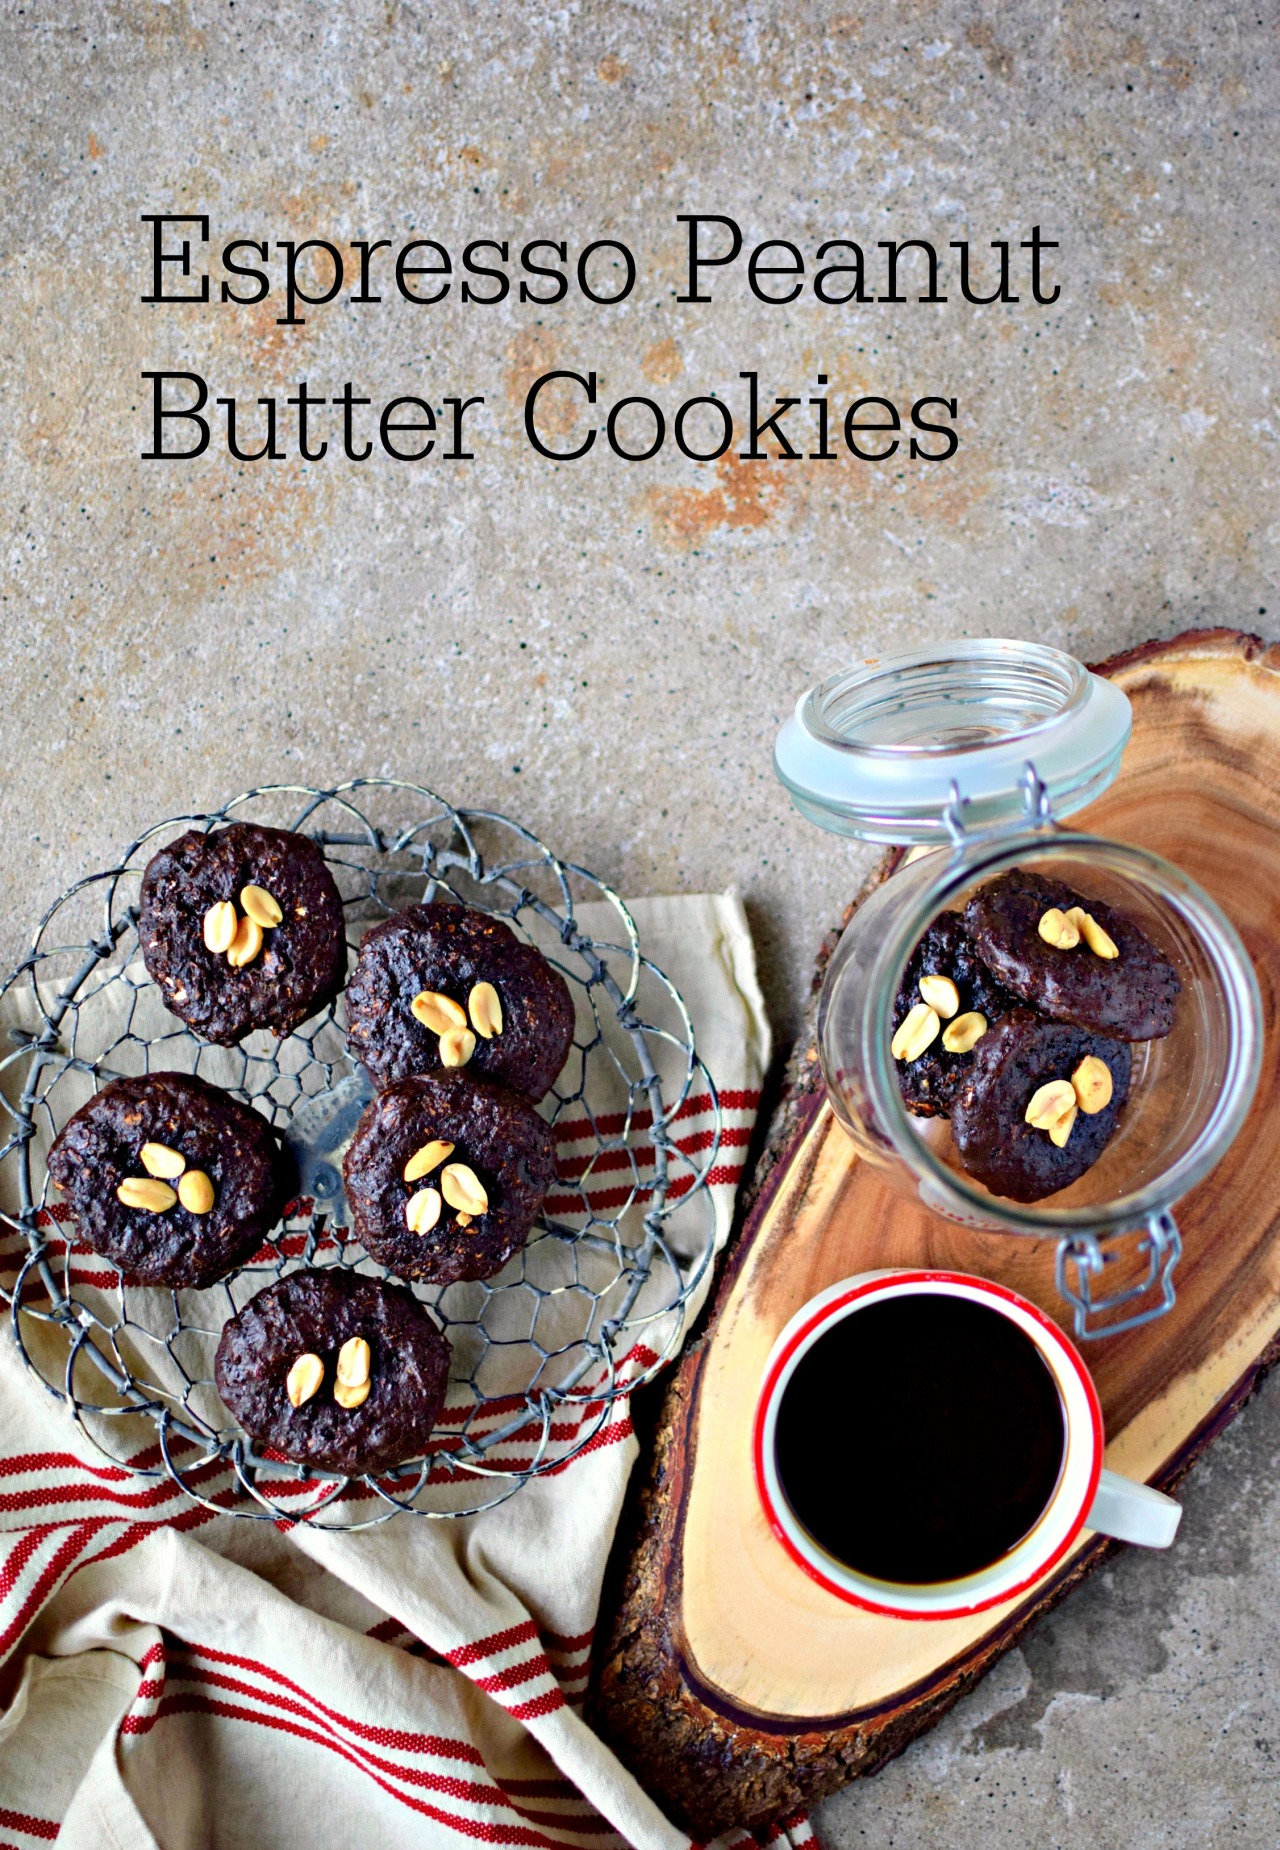 A lower sugar, dairy-free and gluten-free soft oat cookie containing a sneaky superfood (shh...it's chaga), munch on a couple for a post-workout, at-work or travel snack. These energising bakes are also great as an on-the-go breakfast with a piece of fruit and a small carton of yogurt. You can easily make them child-friendly by nixing the espresso and adding some raisins in its place. For a nut-free version, use delicious sunflower/sun butter.